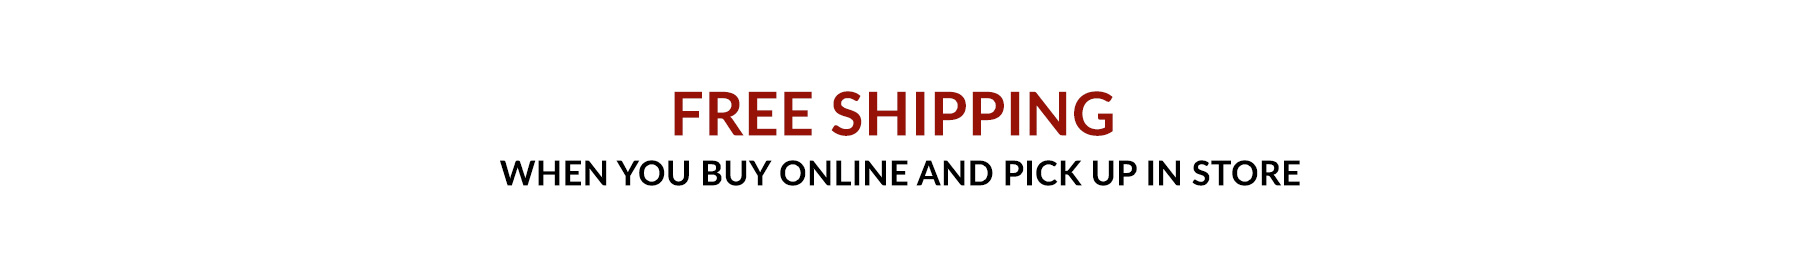 Free shipping, when you buy online and pick up in store